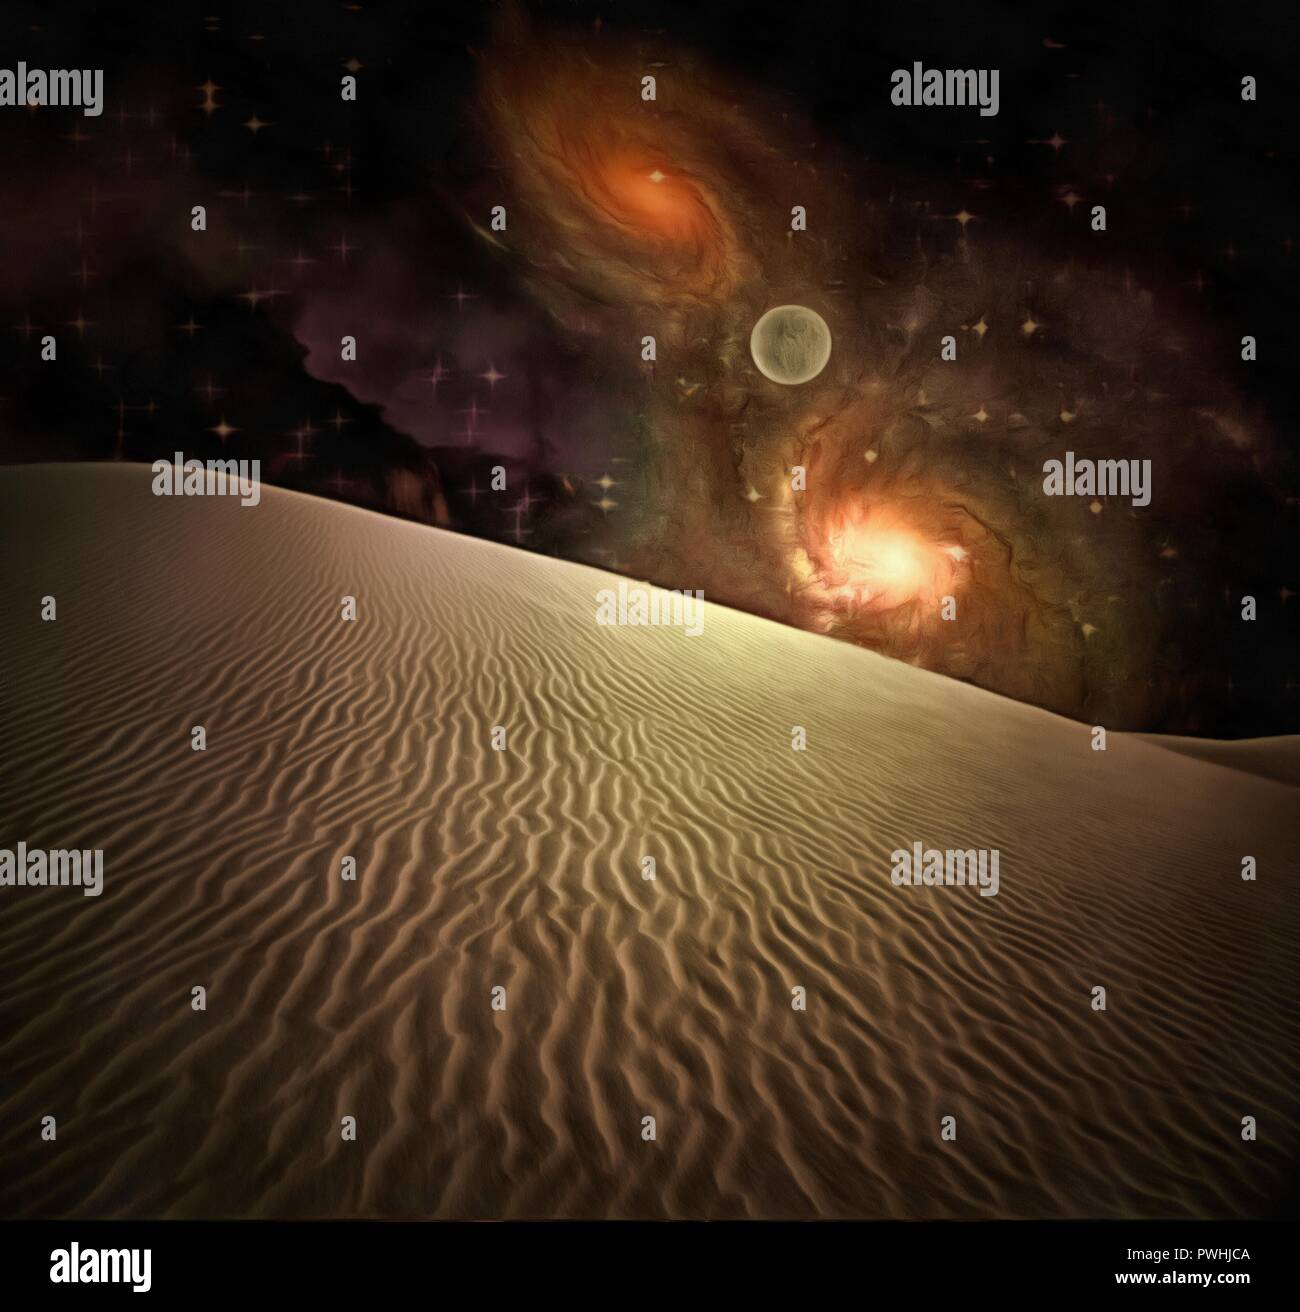 Surreal painting. Sand dune, bright galaxies in the starry sky, moon. Stock Photo